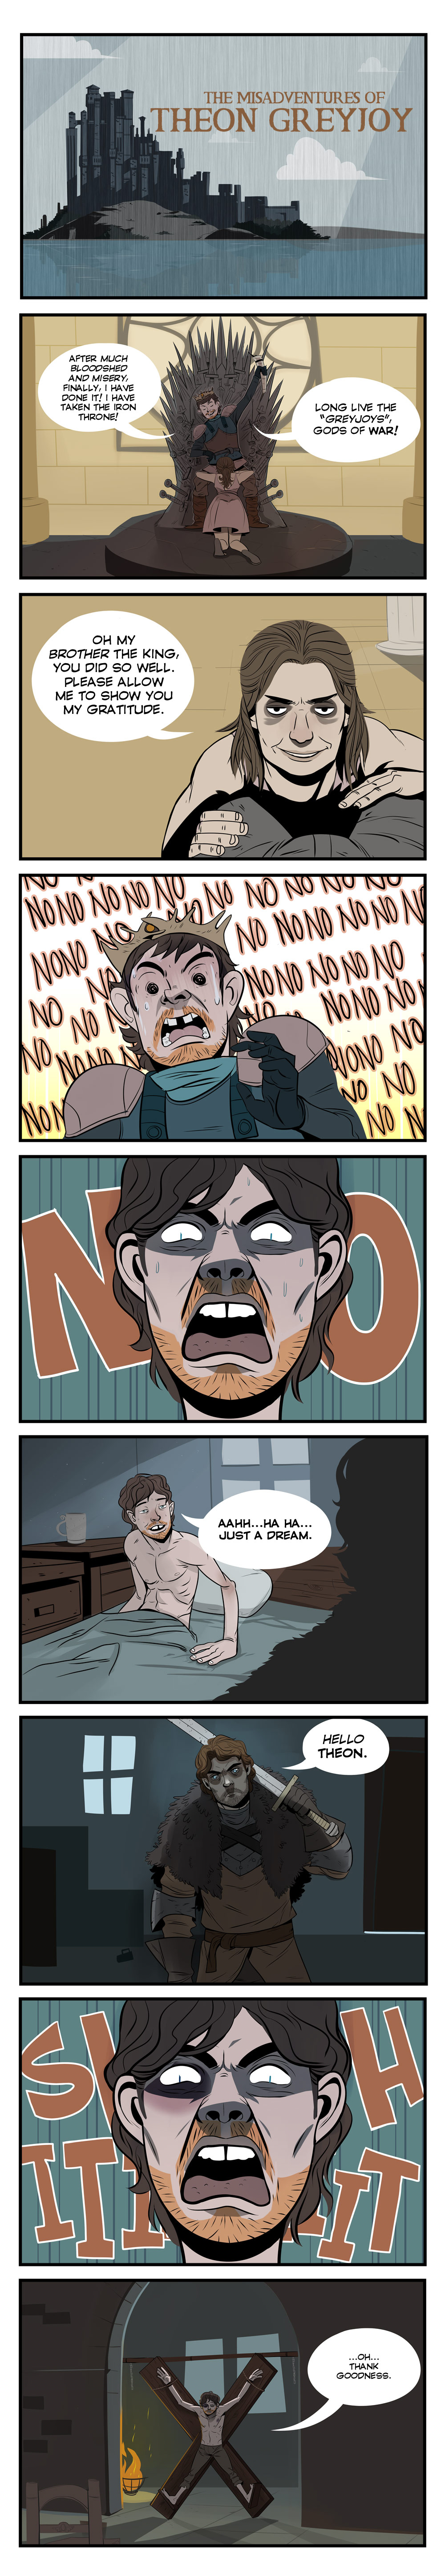 The Misdaventures of Theon Greyjoy by Dynamaito